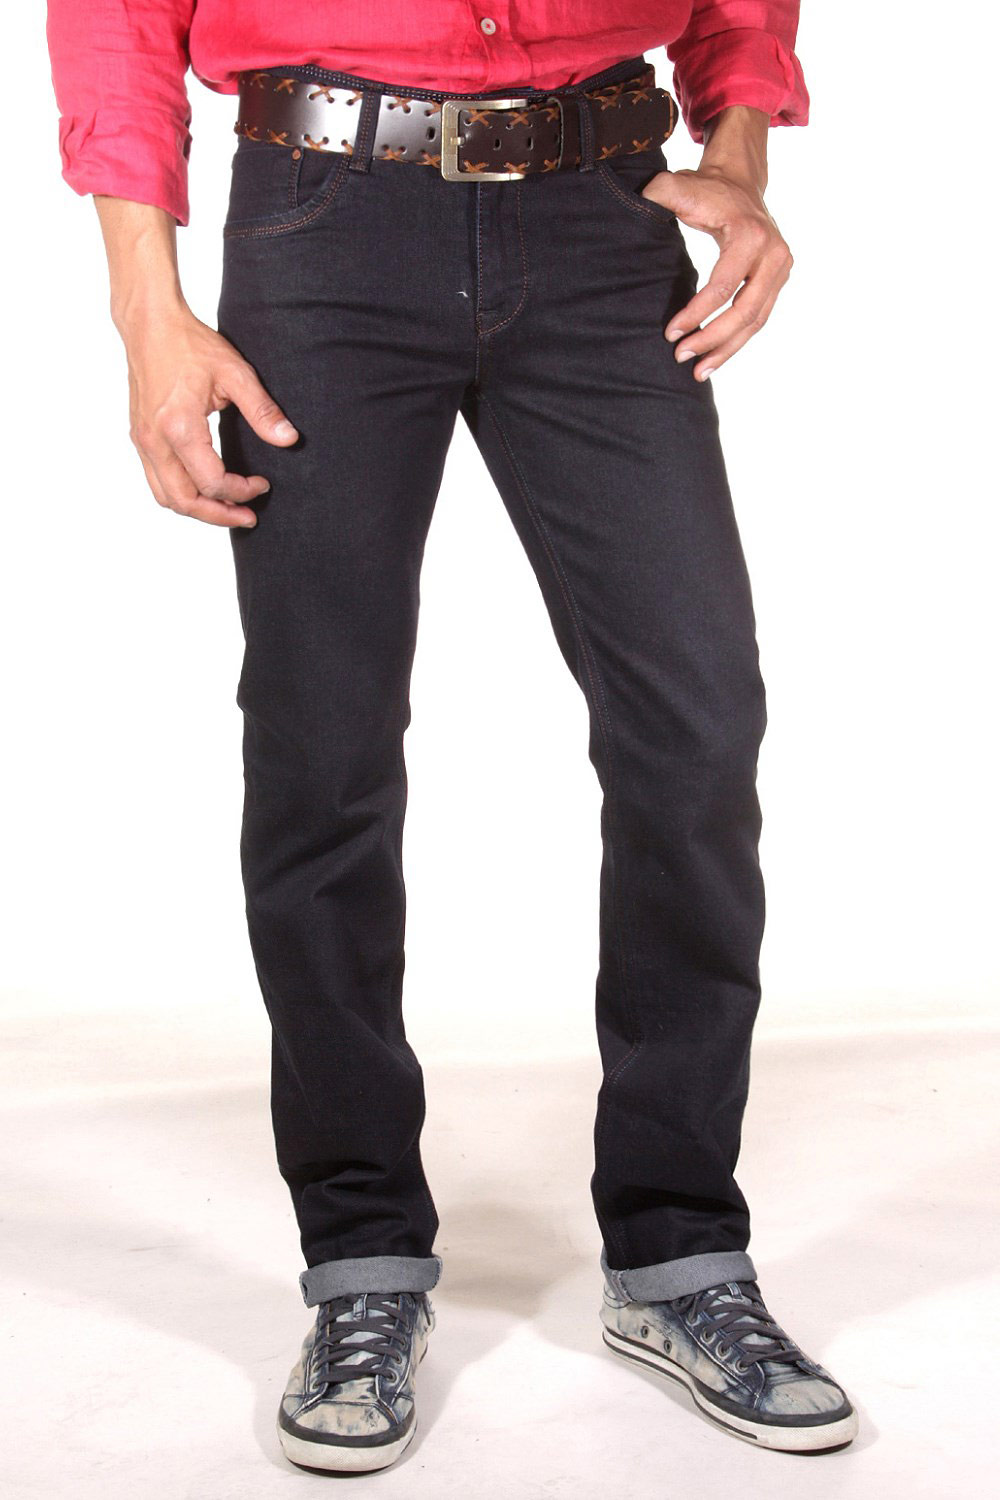 DIFFER stretch jeans slim fit at oboy.com